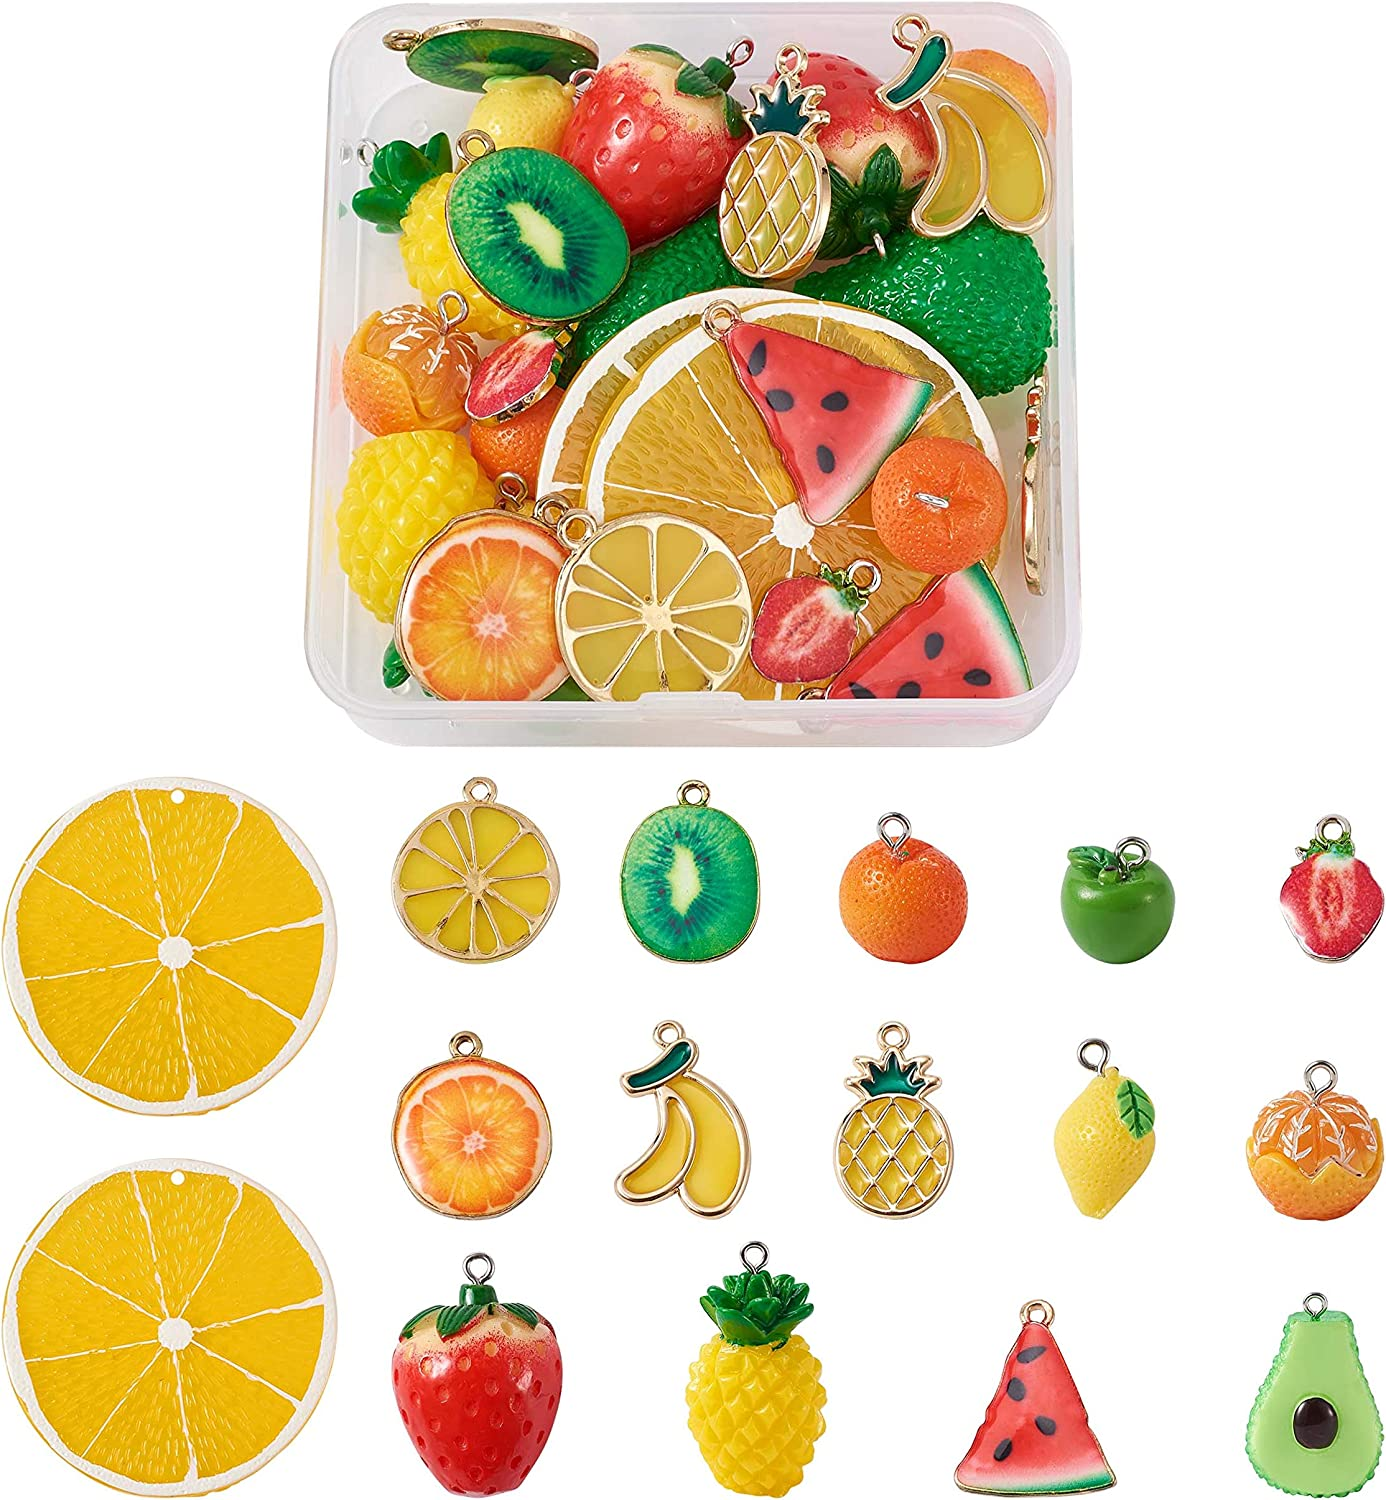 30pcs/Box Resin & Alloy Enamel Fruit Charms 15 Styles Apple Lemon Orange Pineapple Strawberry Dangle Pendants for DIY Necklace Bracelet Earrings Jewelry Making